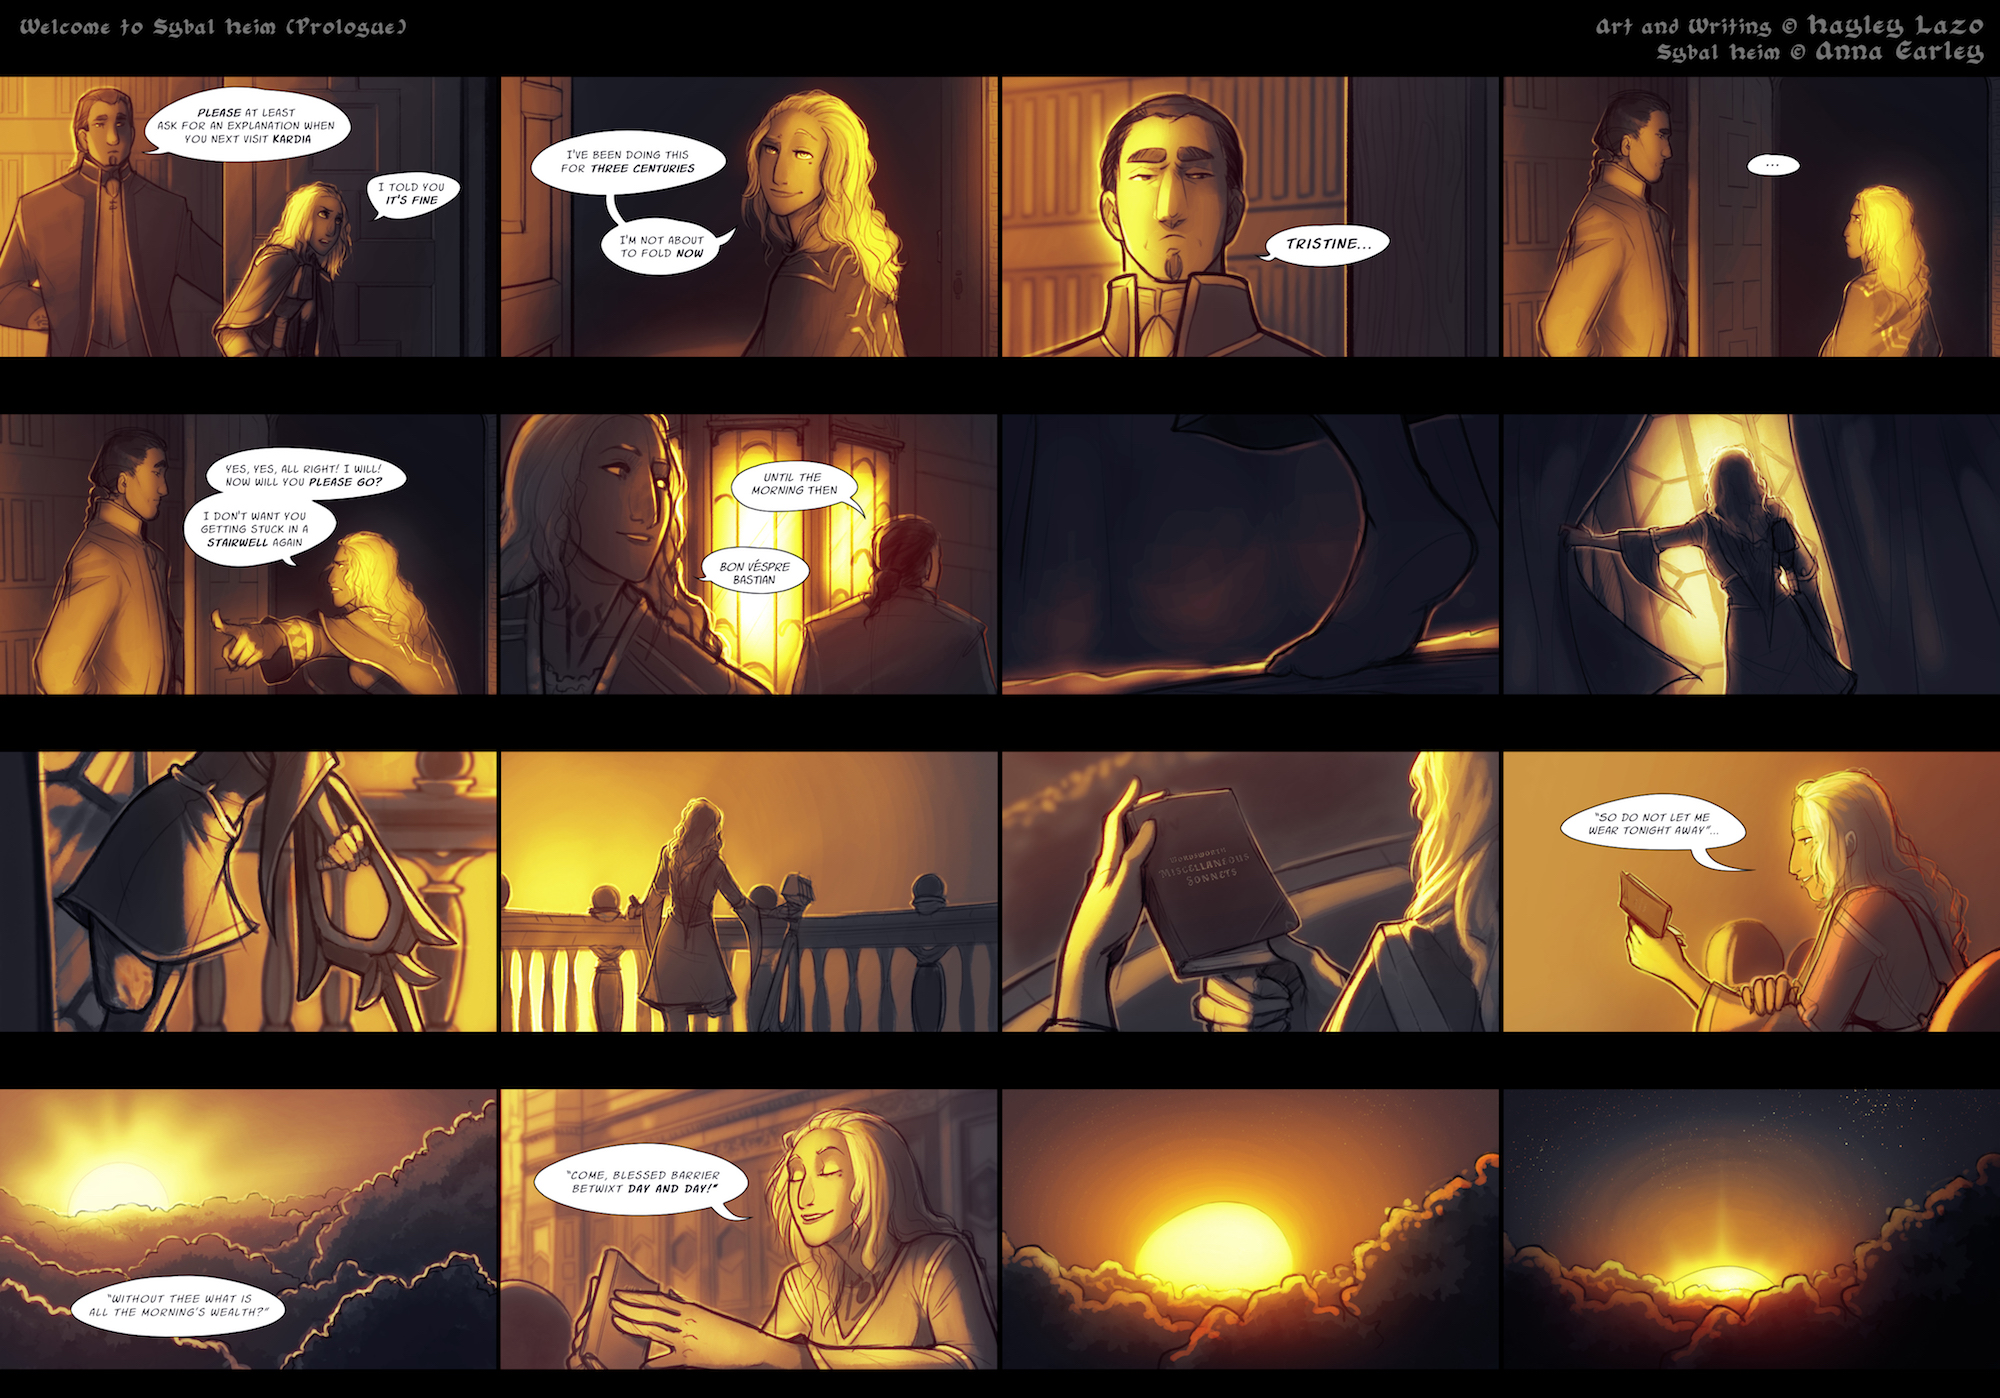 An introduction to the plot/setting of  Sybal Heim. You can find the flash comic itself  Here.